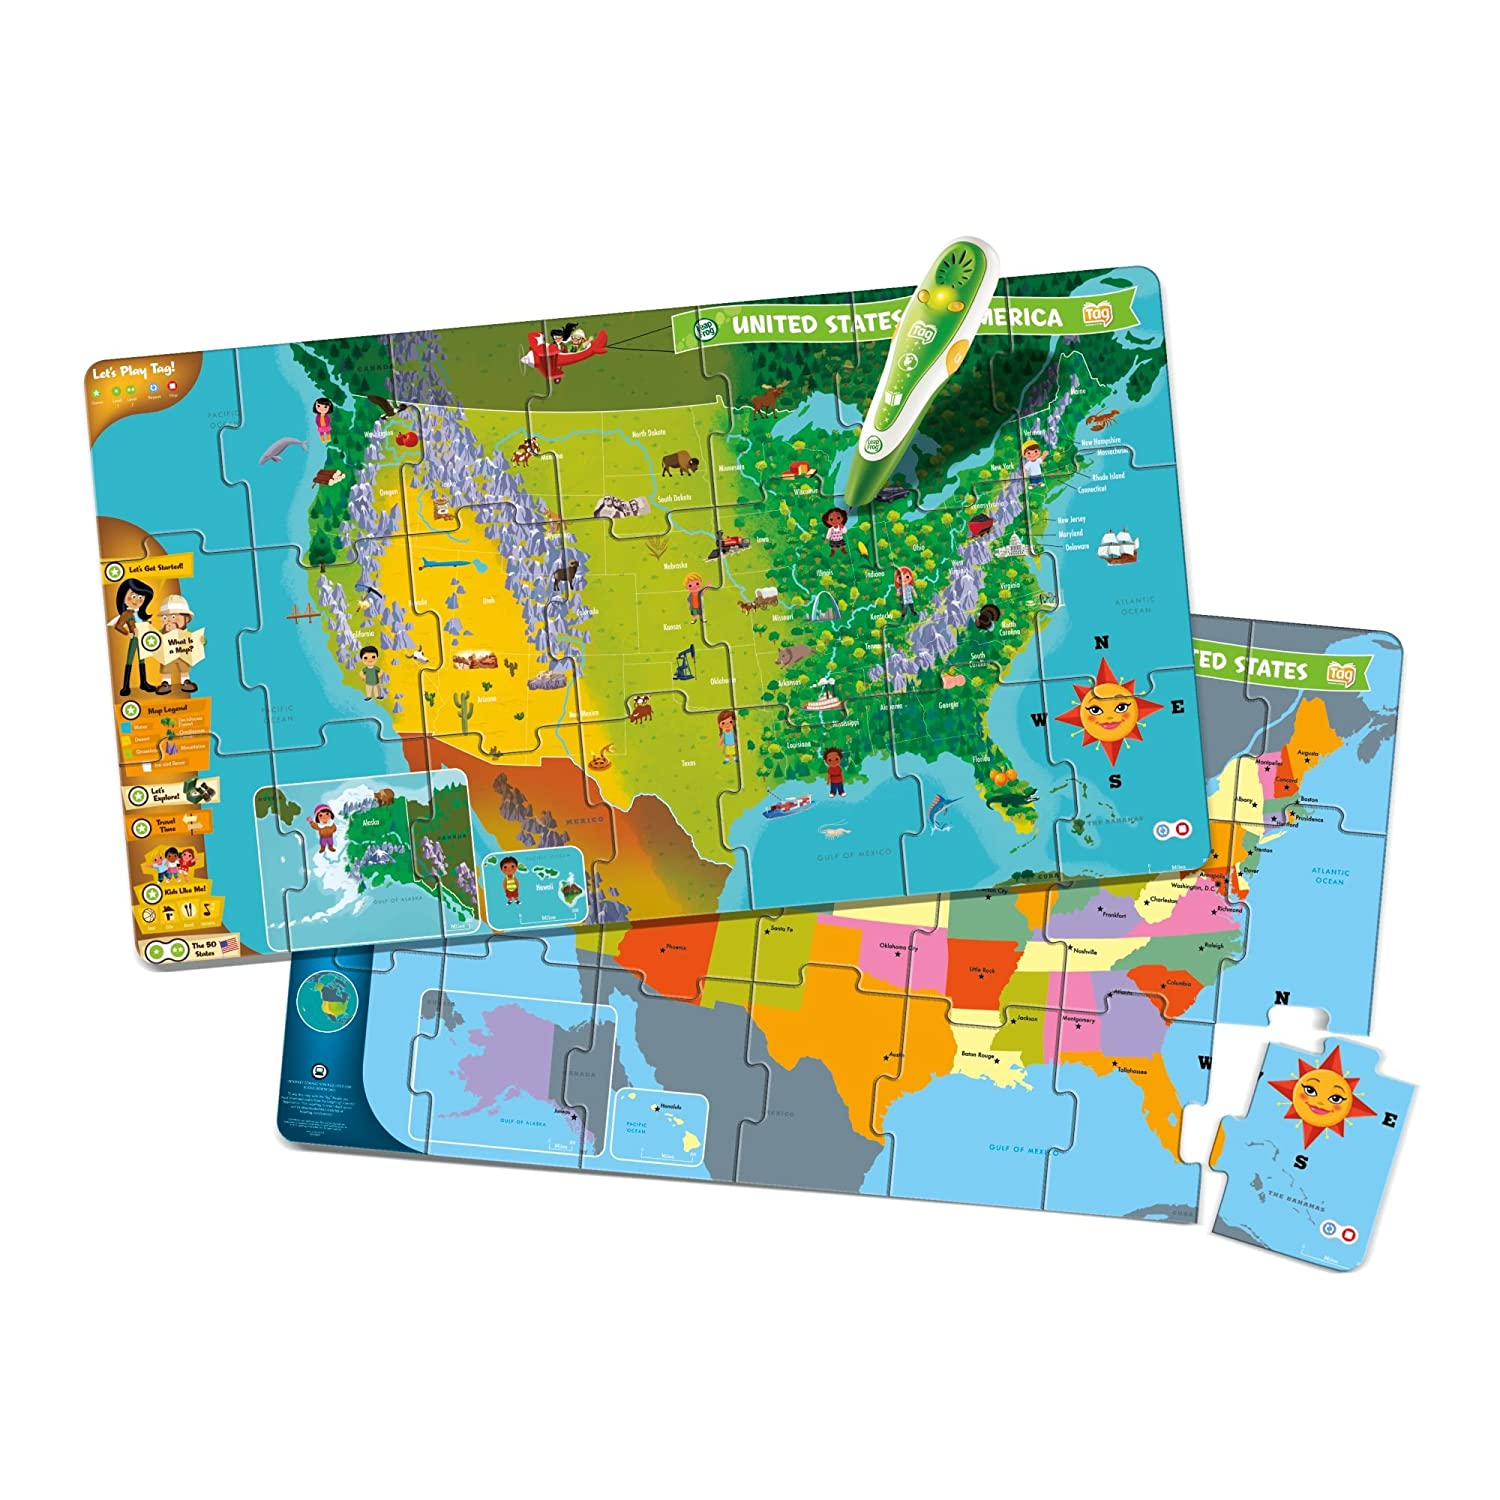 Amazoncom LeapFrog LeapReader Interactive United States Map - Interactive us map puzzle